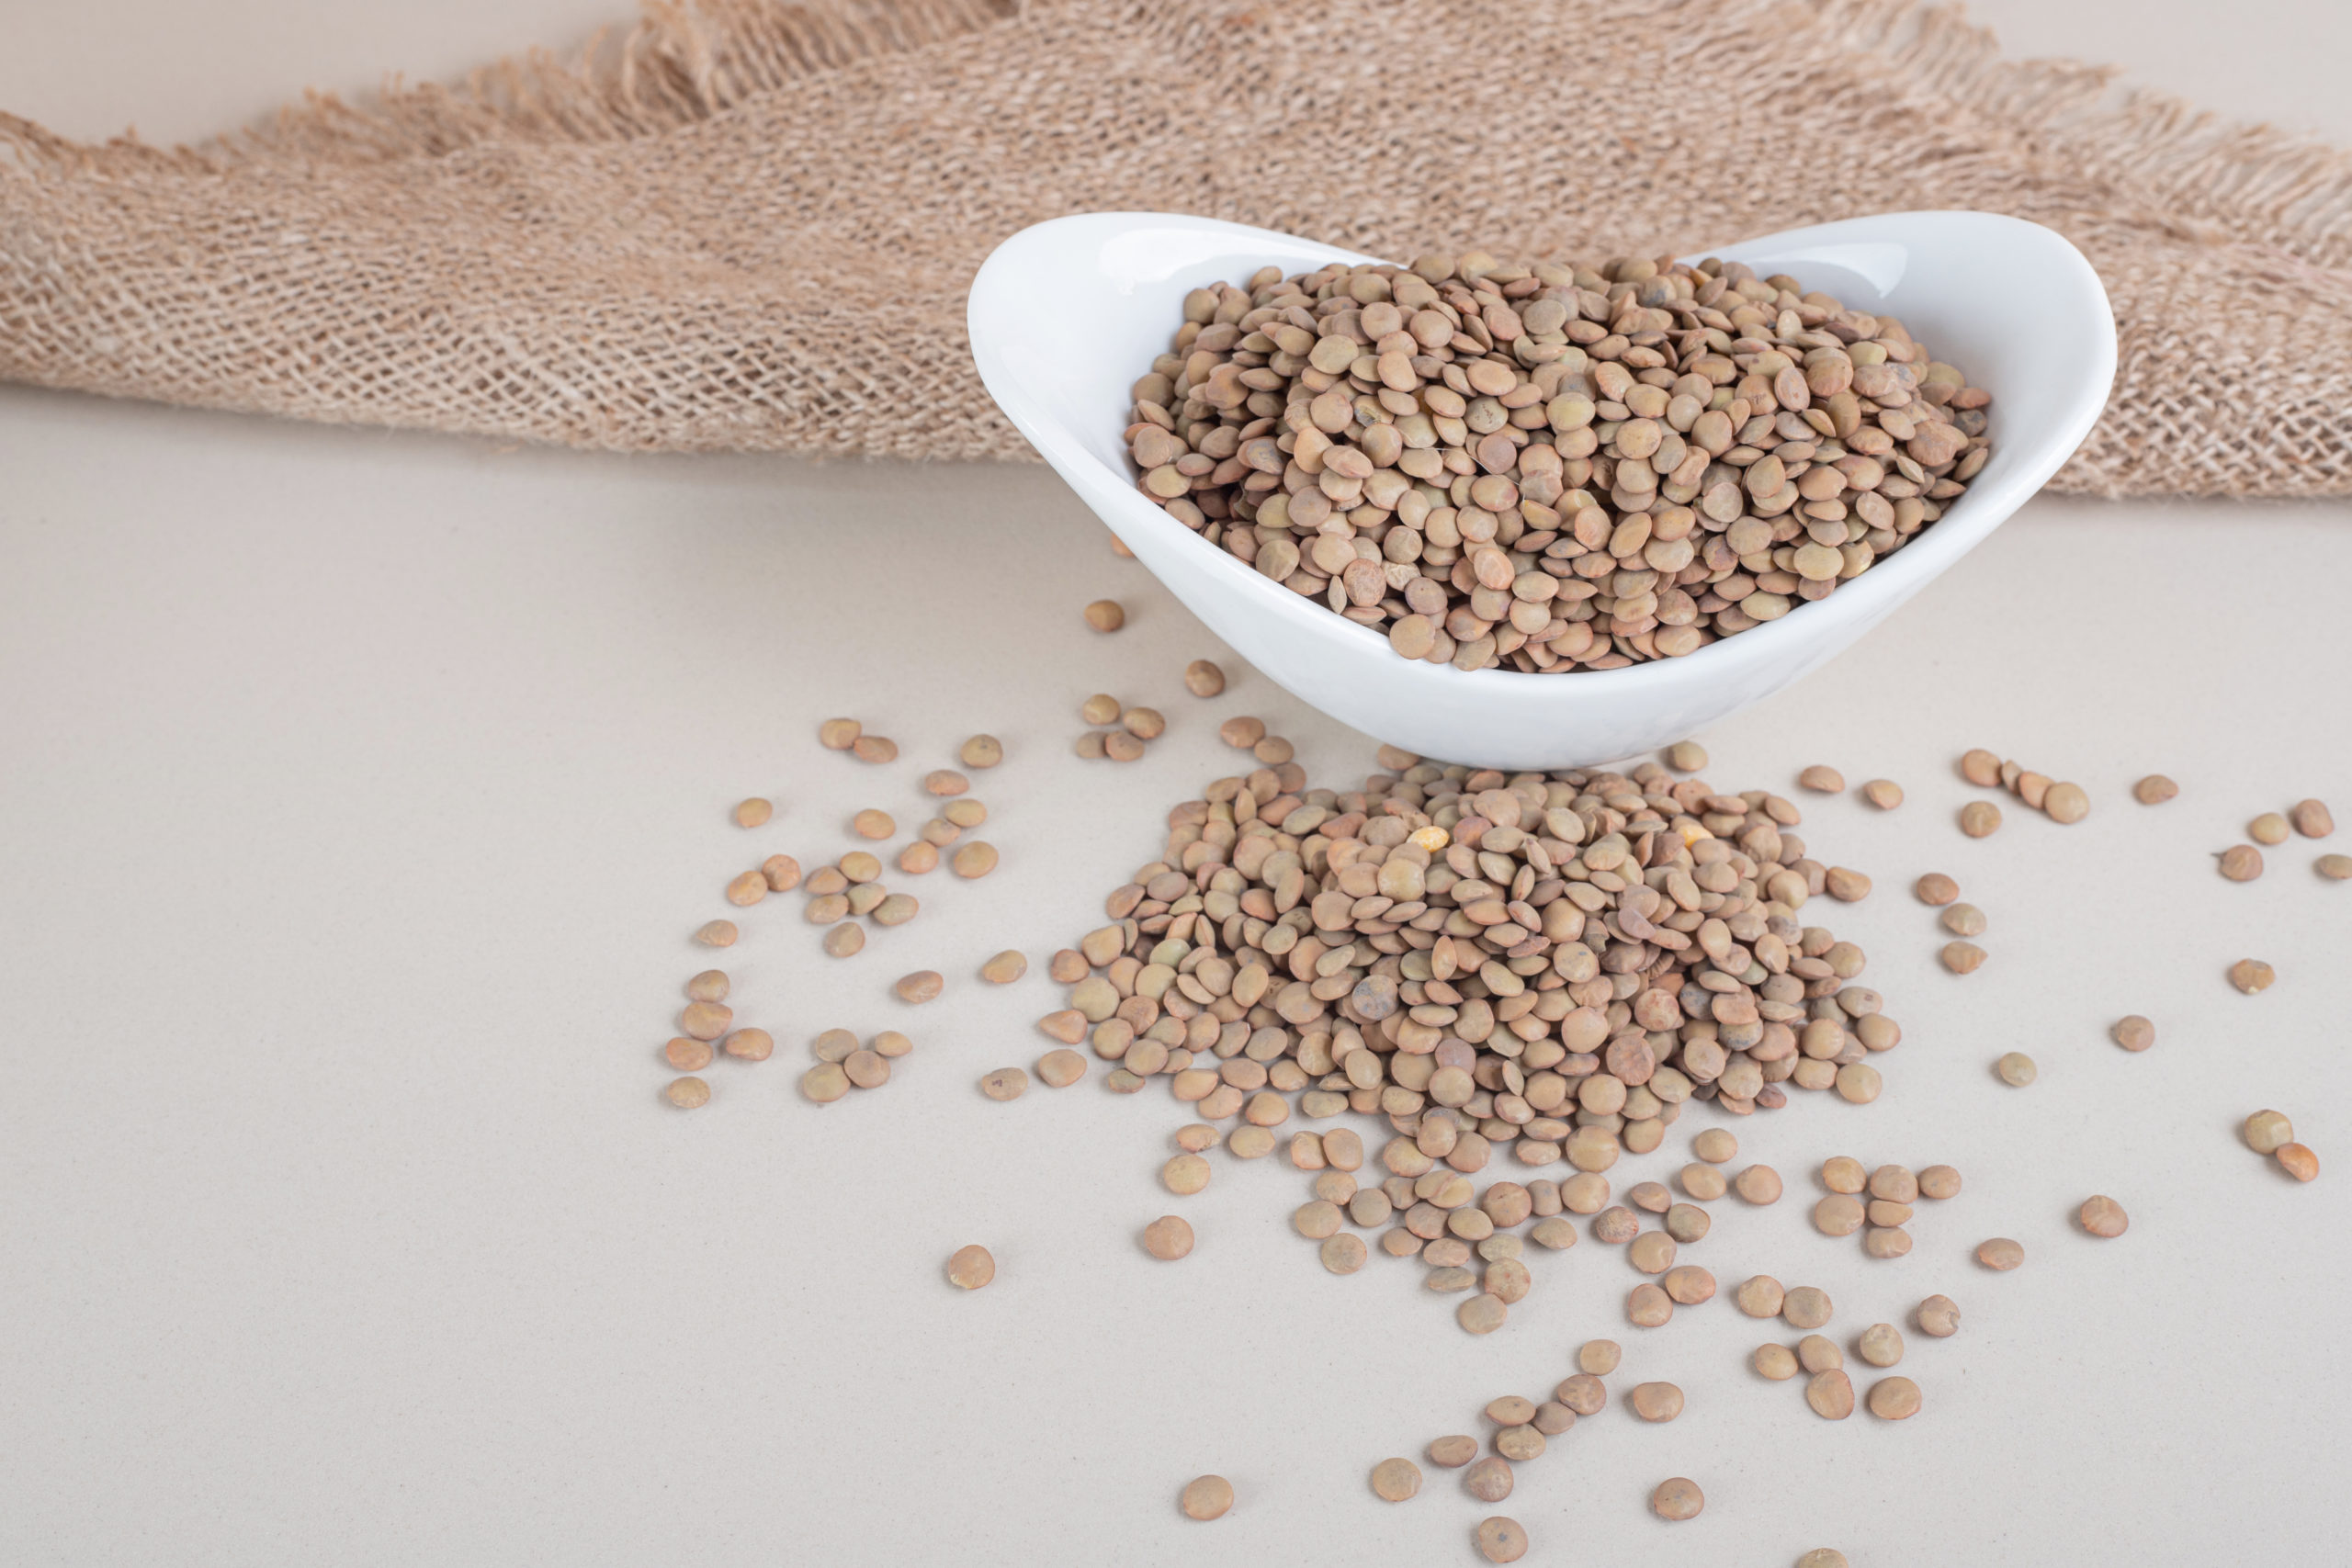 How Long Do Lentils Take to Cook?